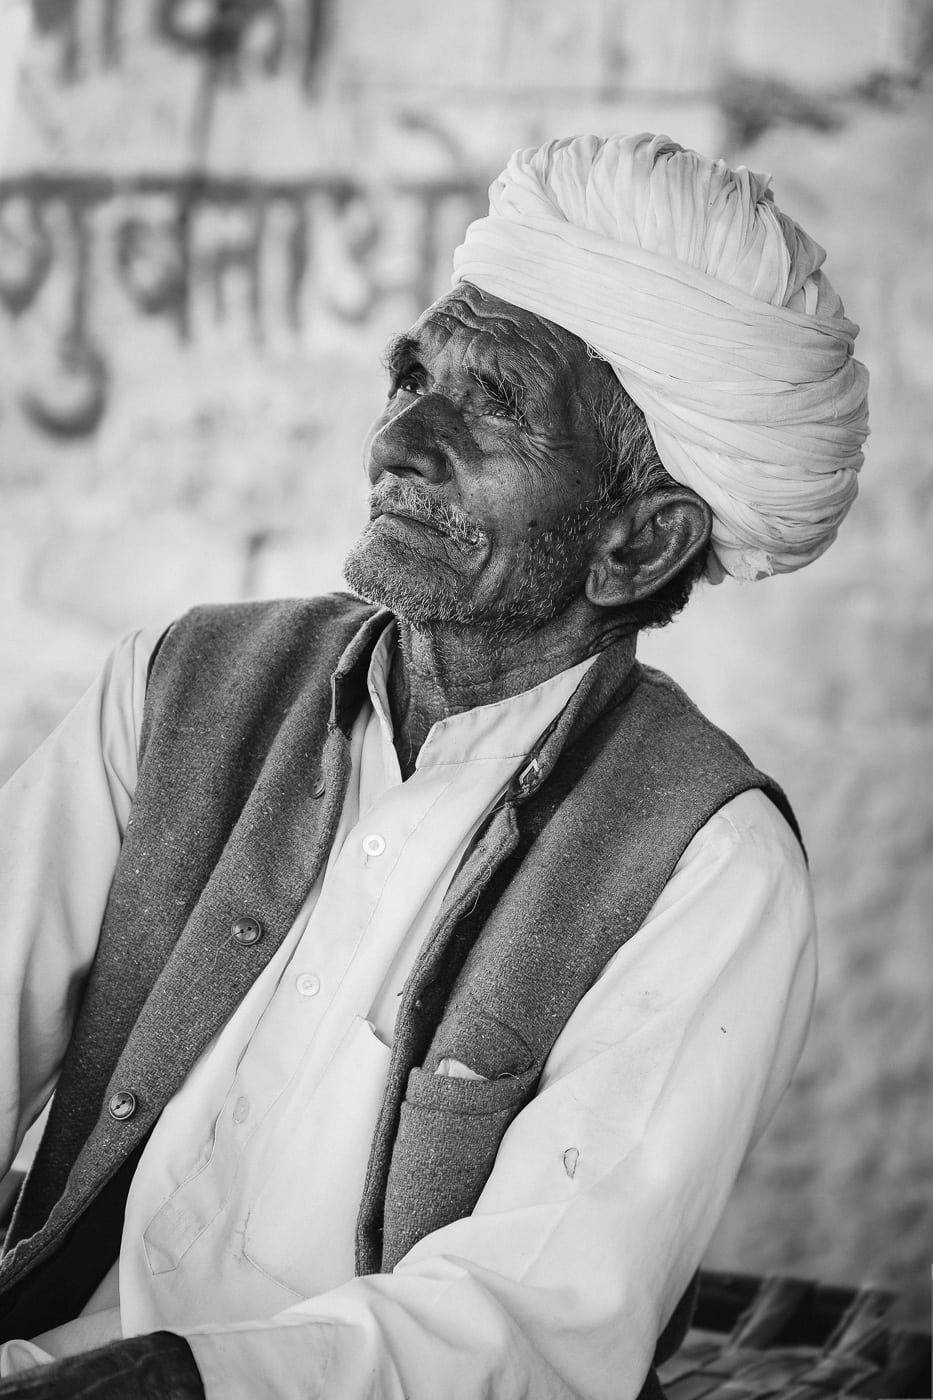 Met this man at a tea stall on the way to Pushkar.